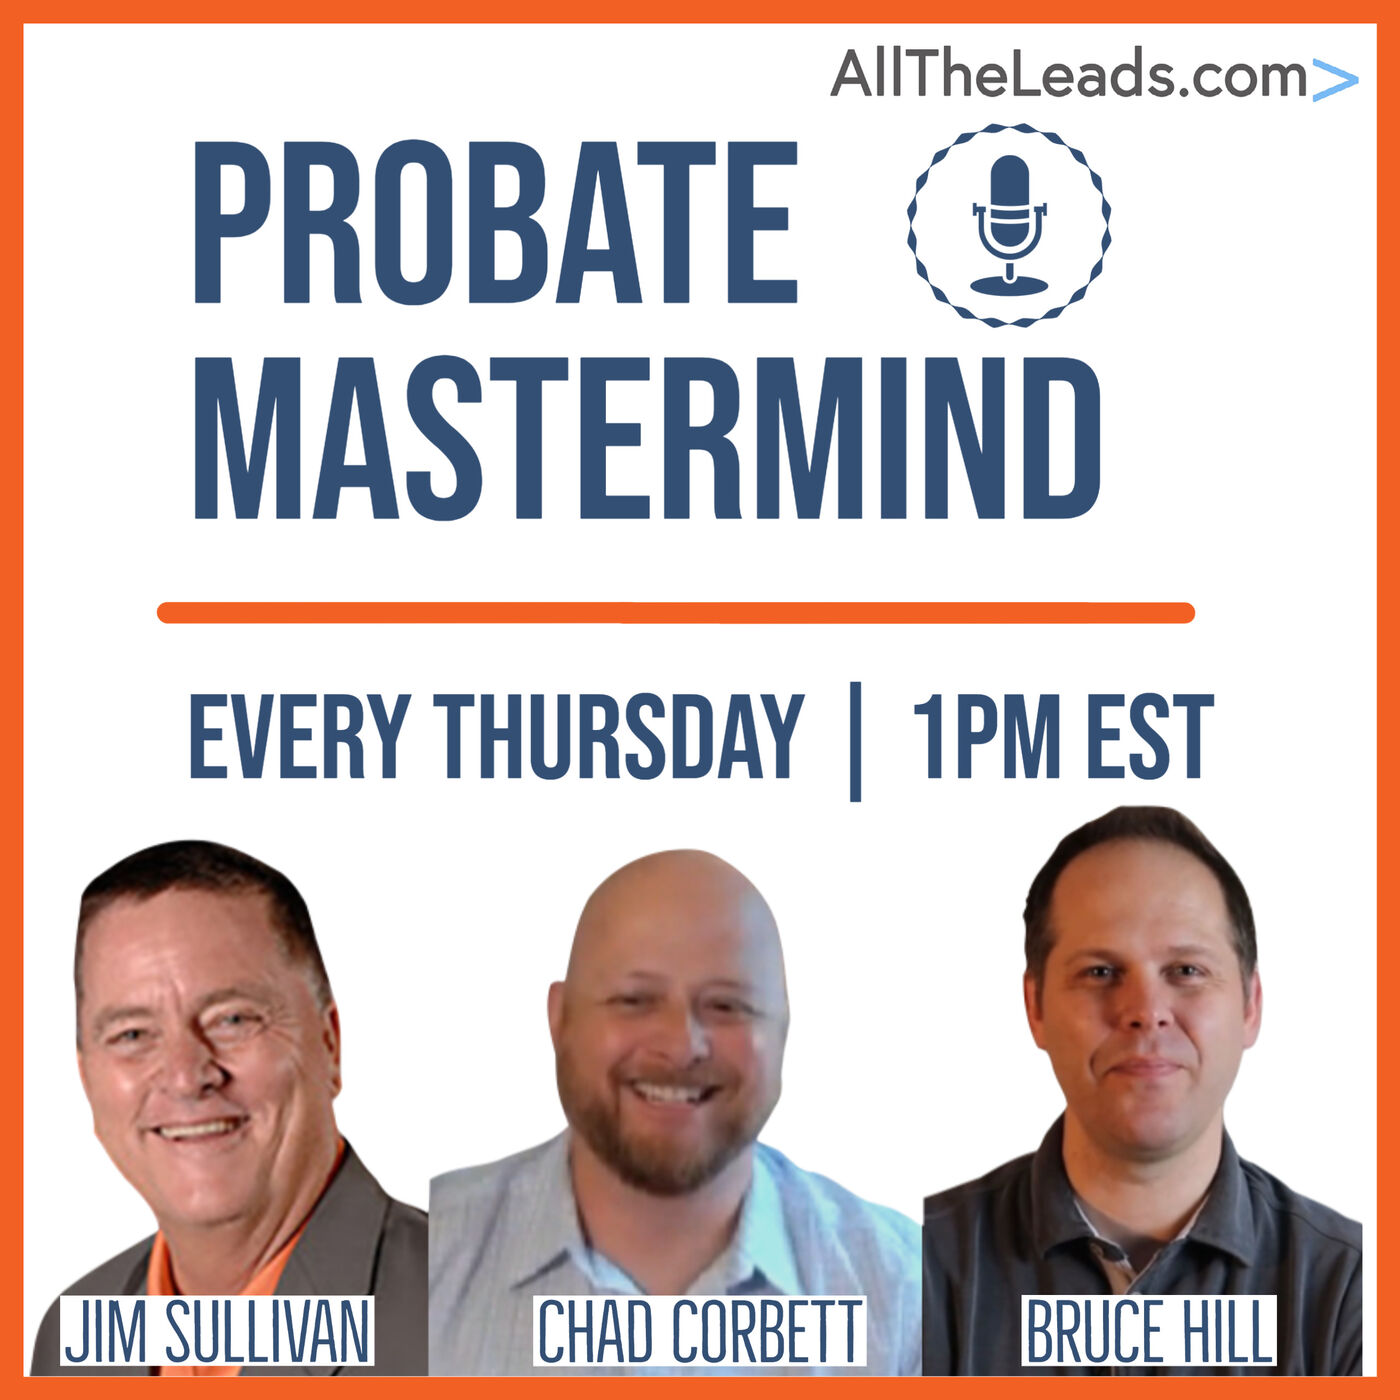 18 Live Q&A That Will Up Your Real Estate Business Game. PLUS: Free house using Sub2 Financing?! | Probate Mastermind Podcast #297